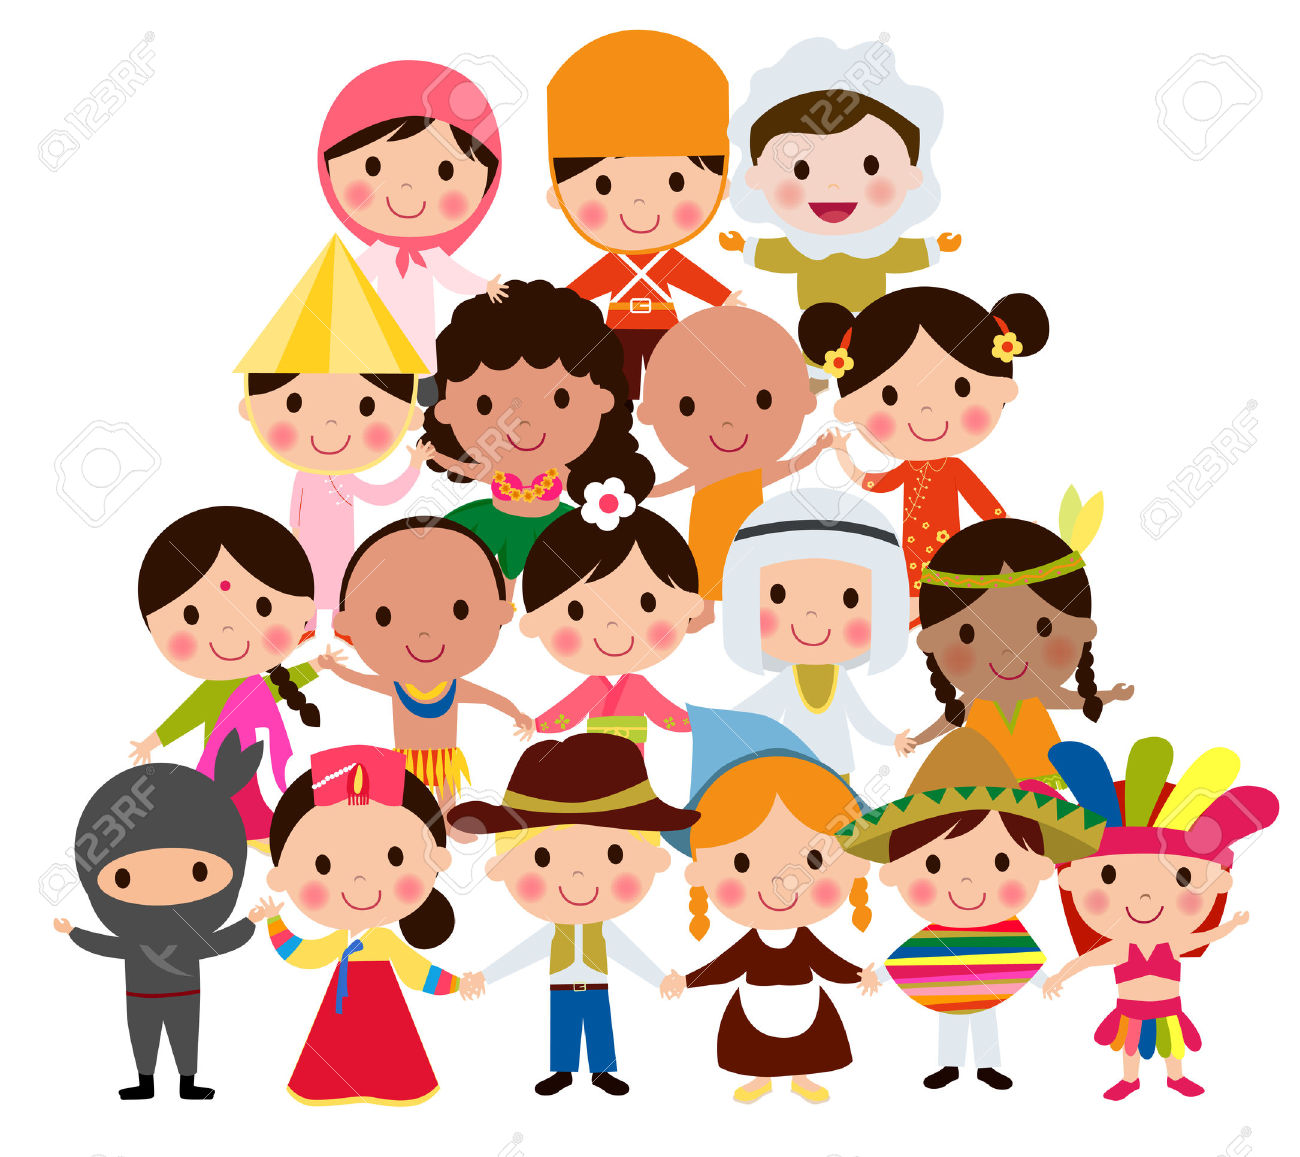 Culture clipart different ethnic group. Diversity free download best